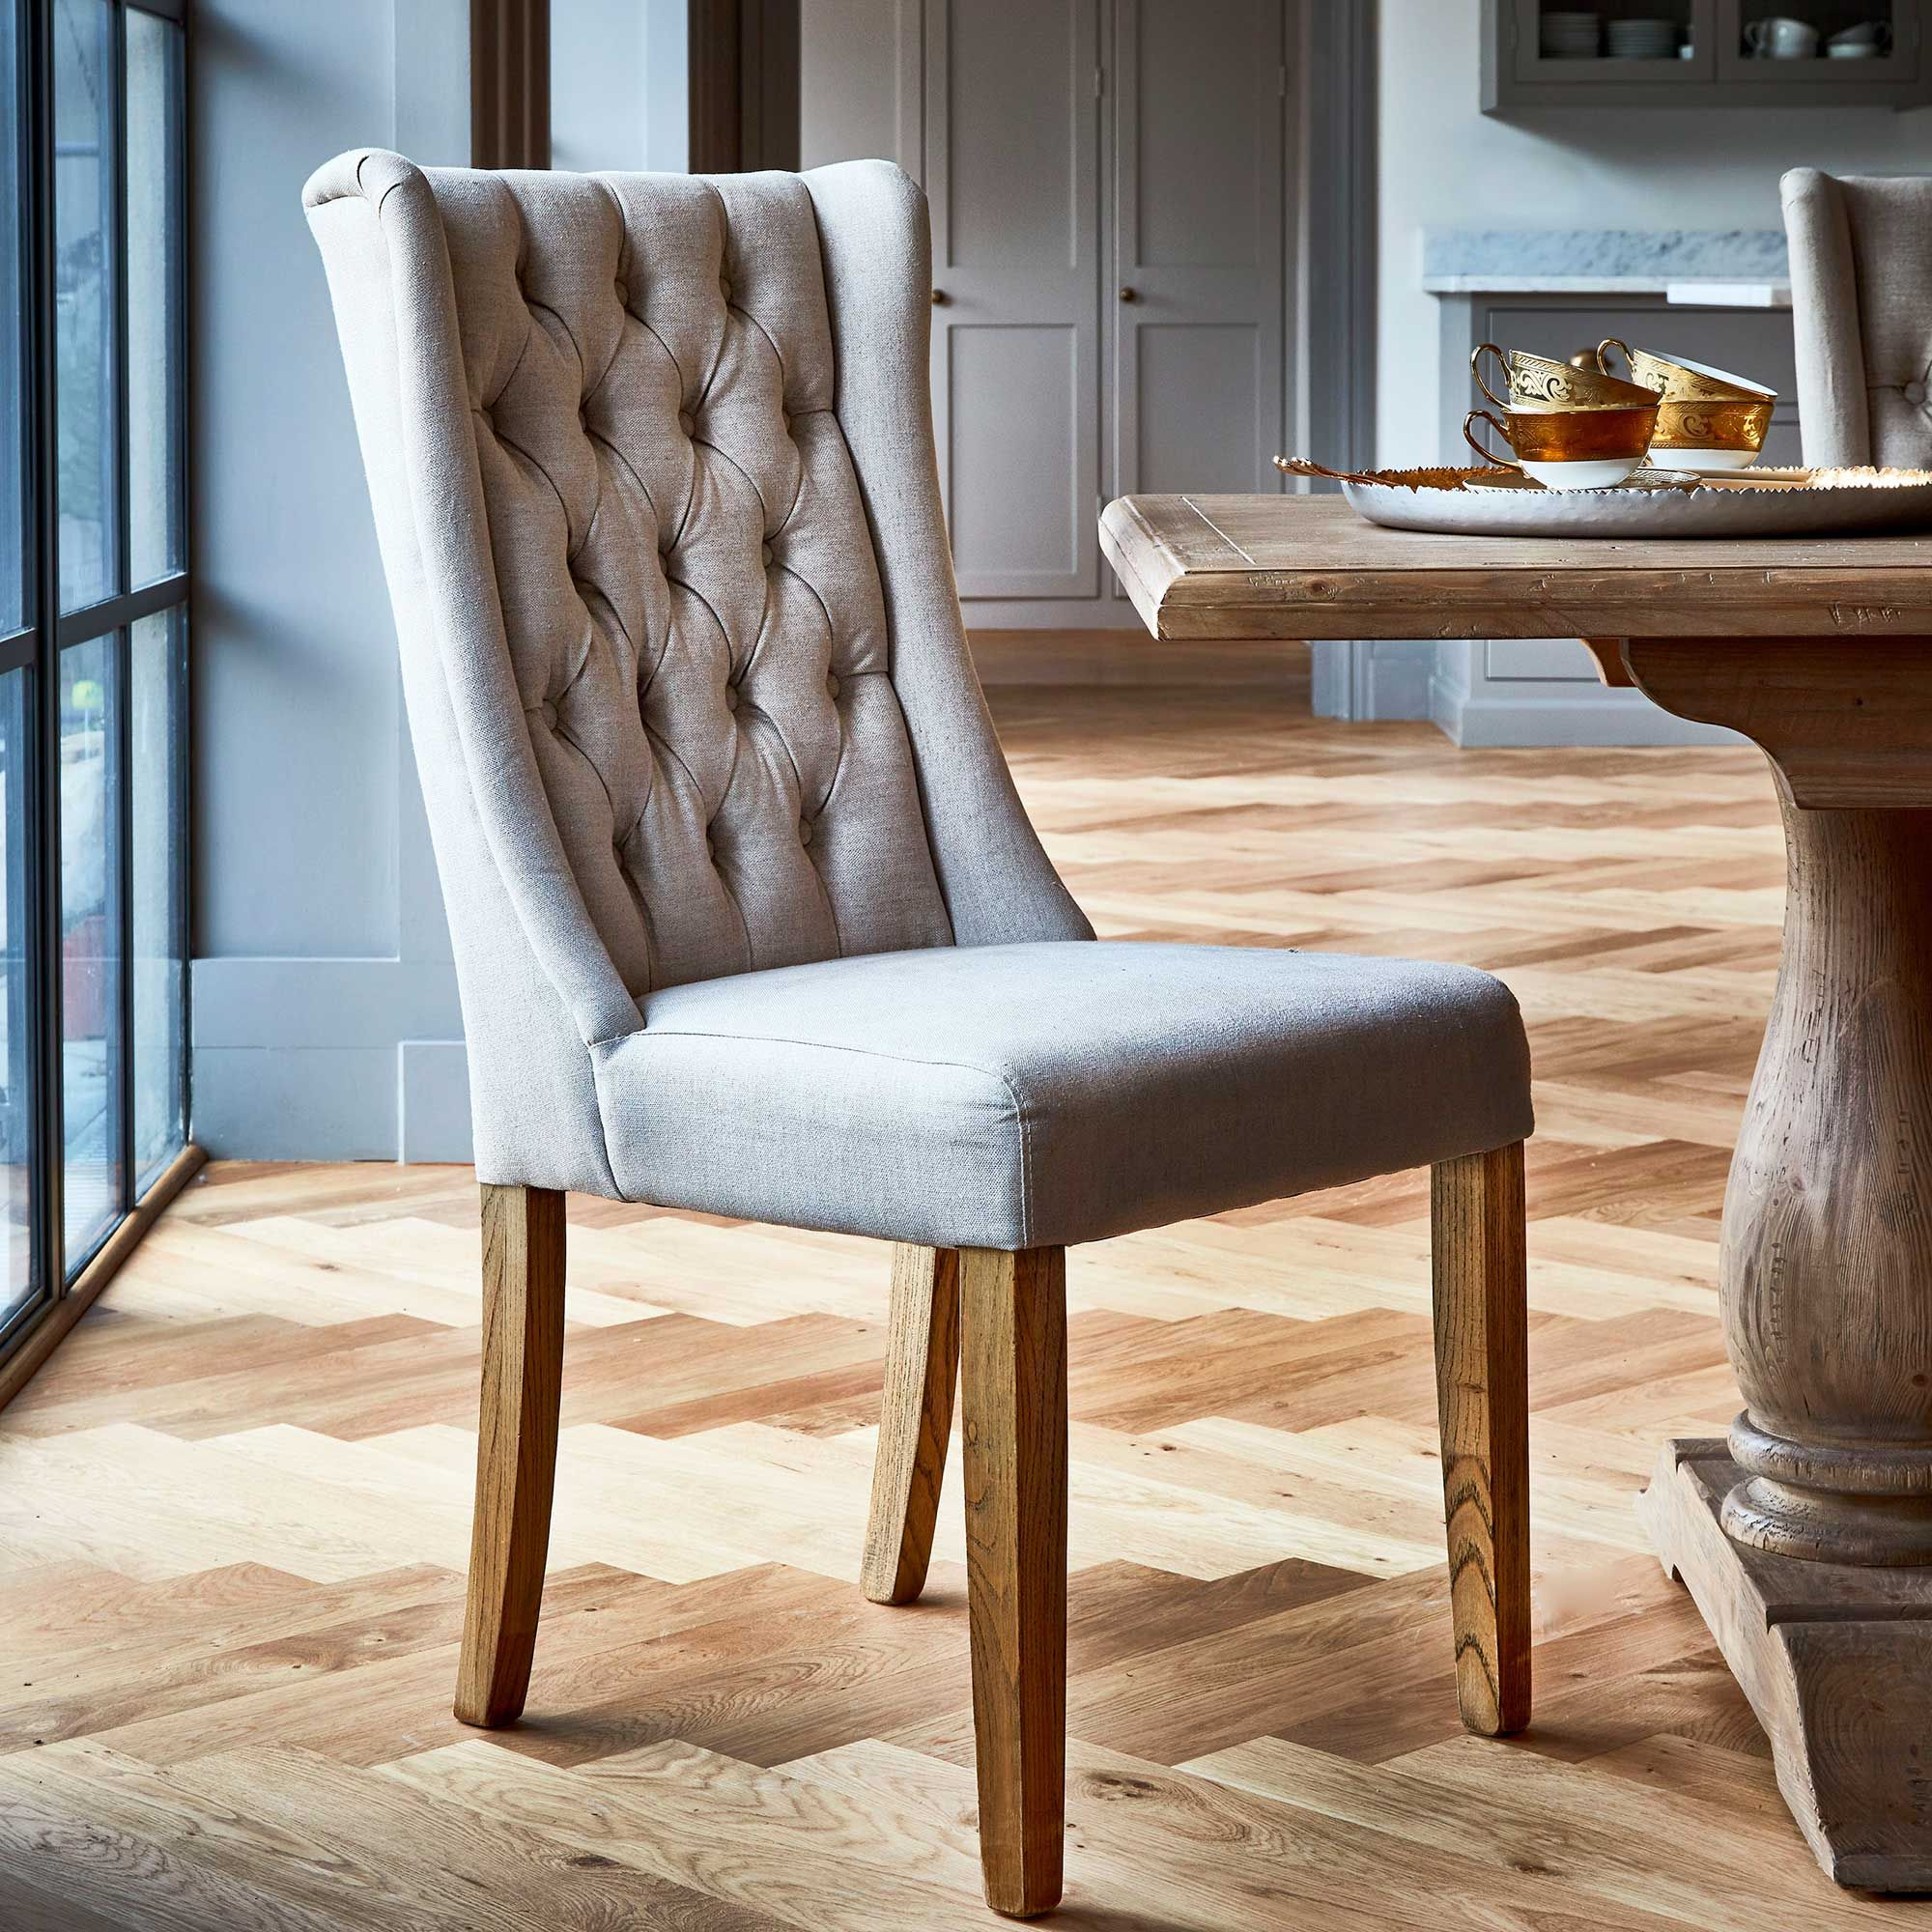 Kipling Fabric Dining Chair, Cream & Oak - Barker & Stonehouse images